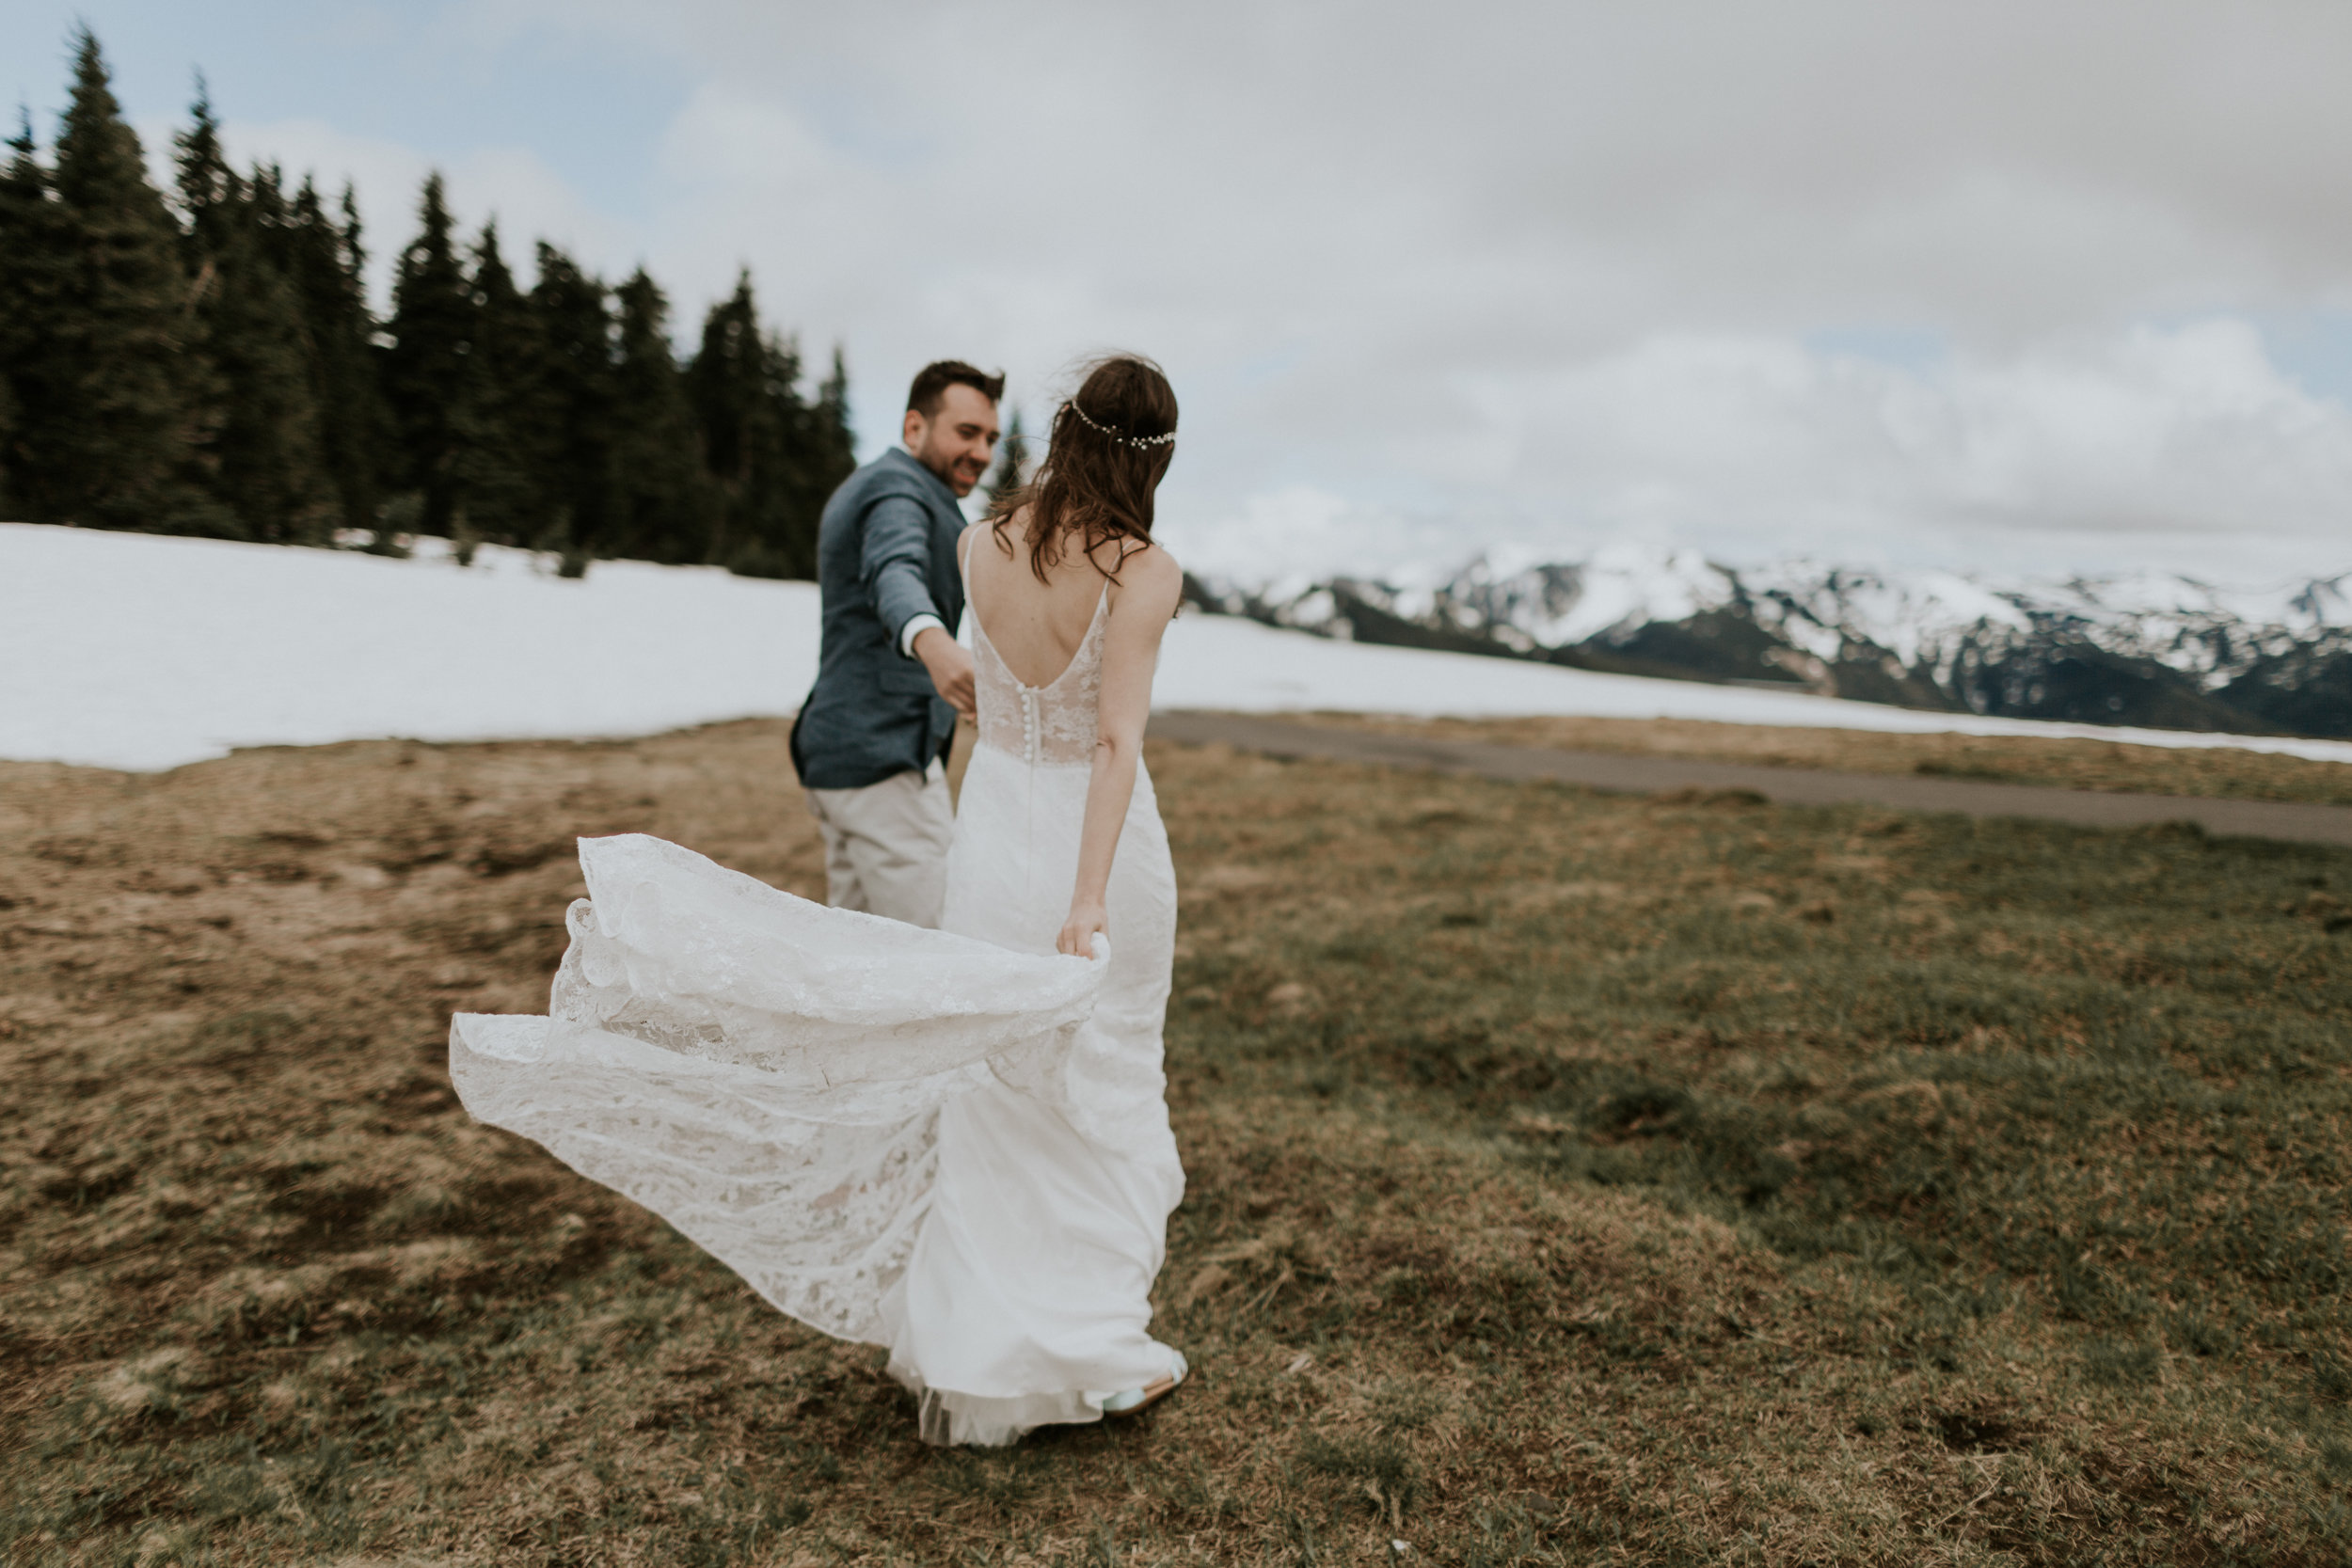 PNW-elopement-wedding-engagement-olympic national park-port angeles-hurricane ridge-lake crescent-kayla dawn photography- photographer-photography-kayladawnphoto-189.jpg